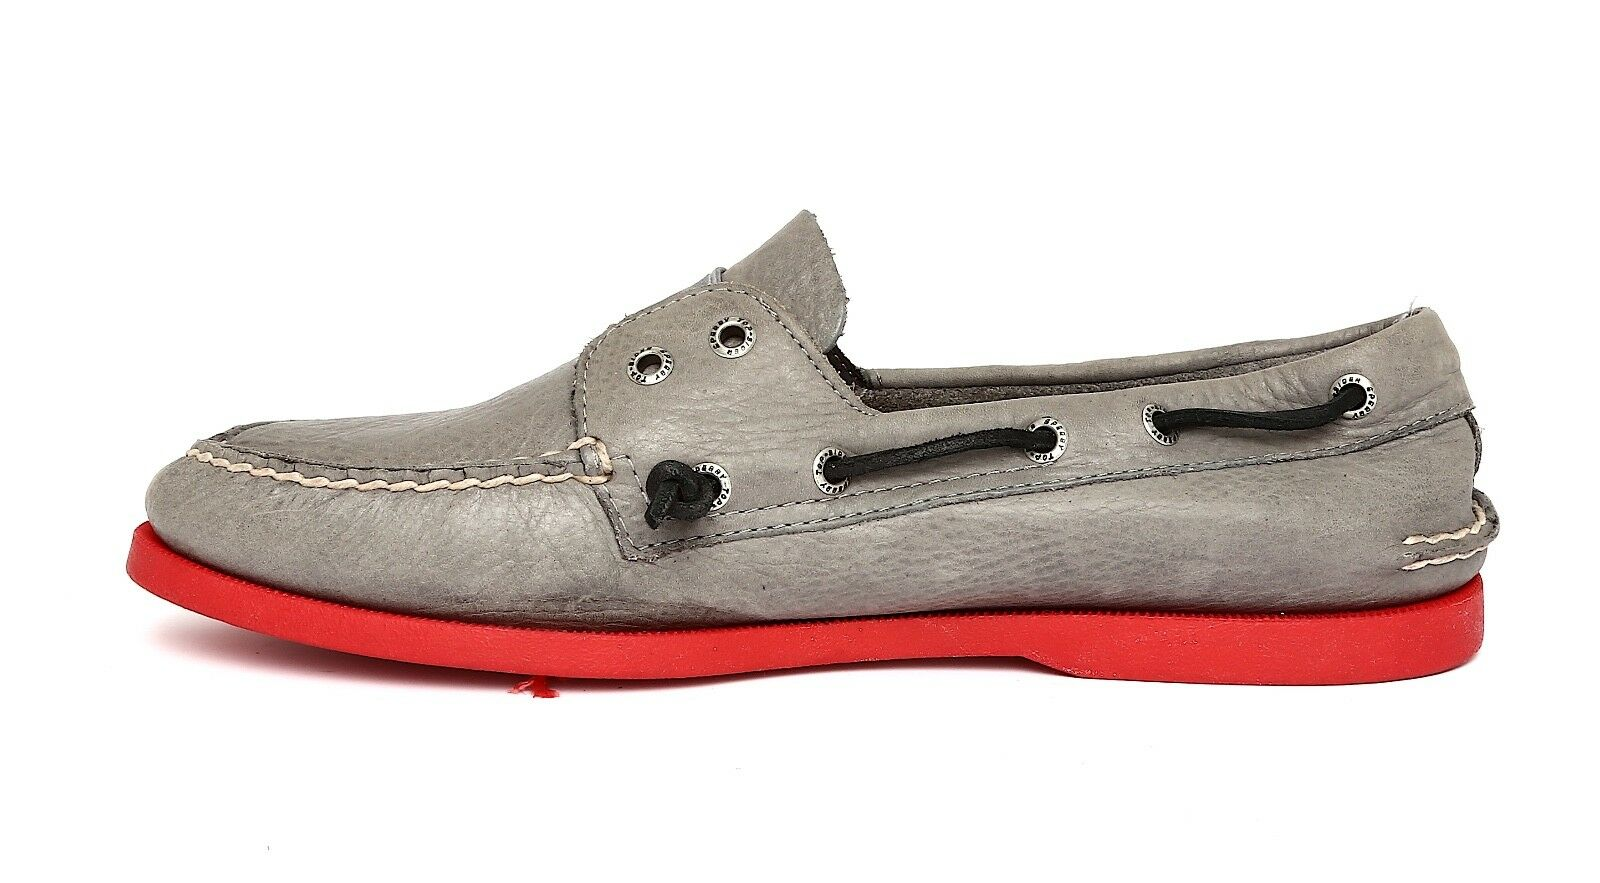 Sperry Top Grey Sider Men's Grey Top Leather Boat Shoes Sz 10M 2663 12a3bd